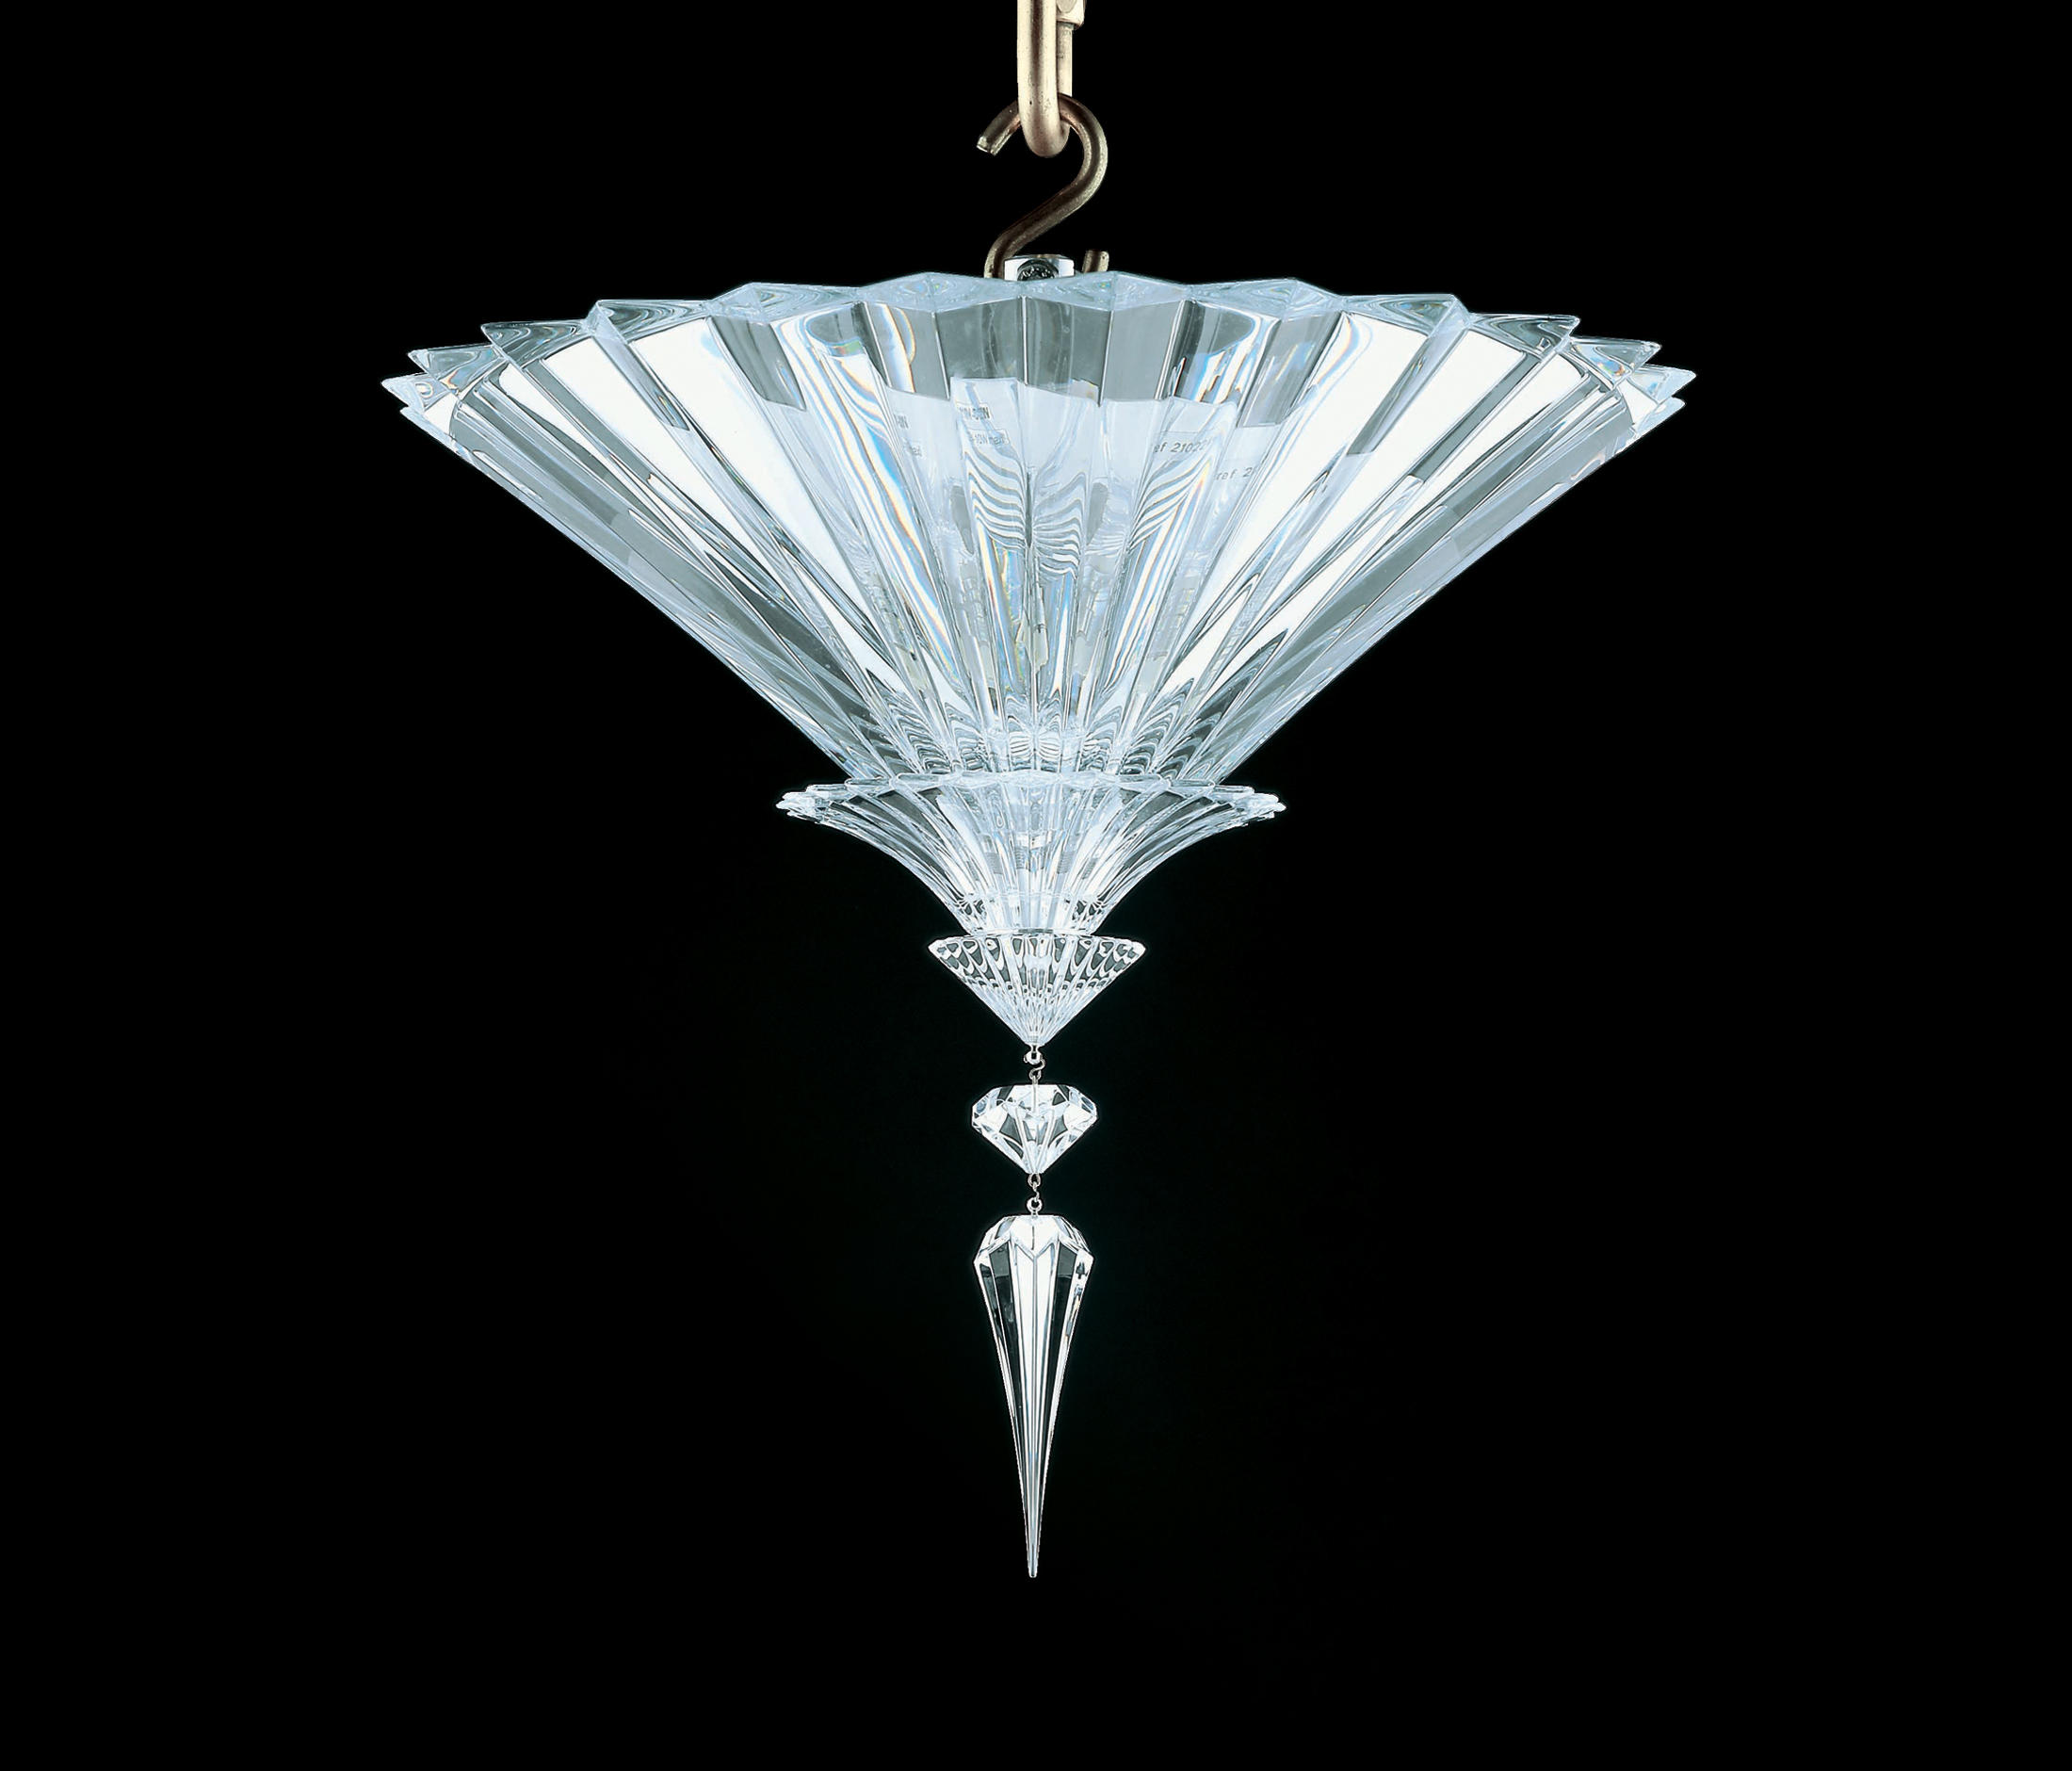 MILLE NUITS - General lighting from Baccarat | Architonic